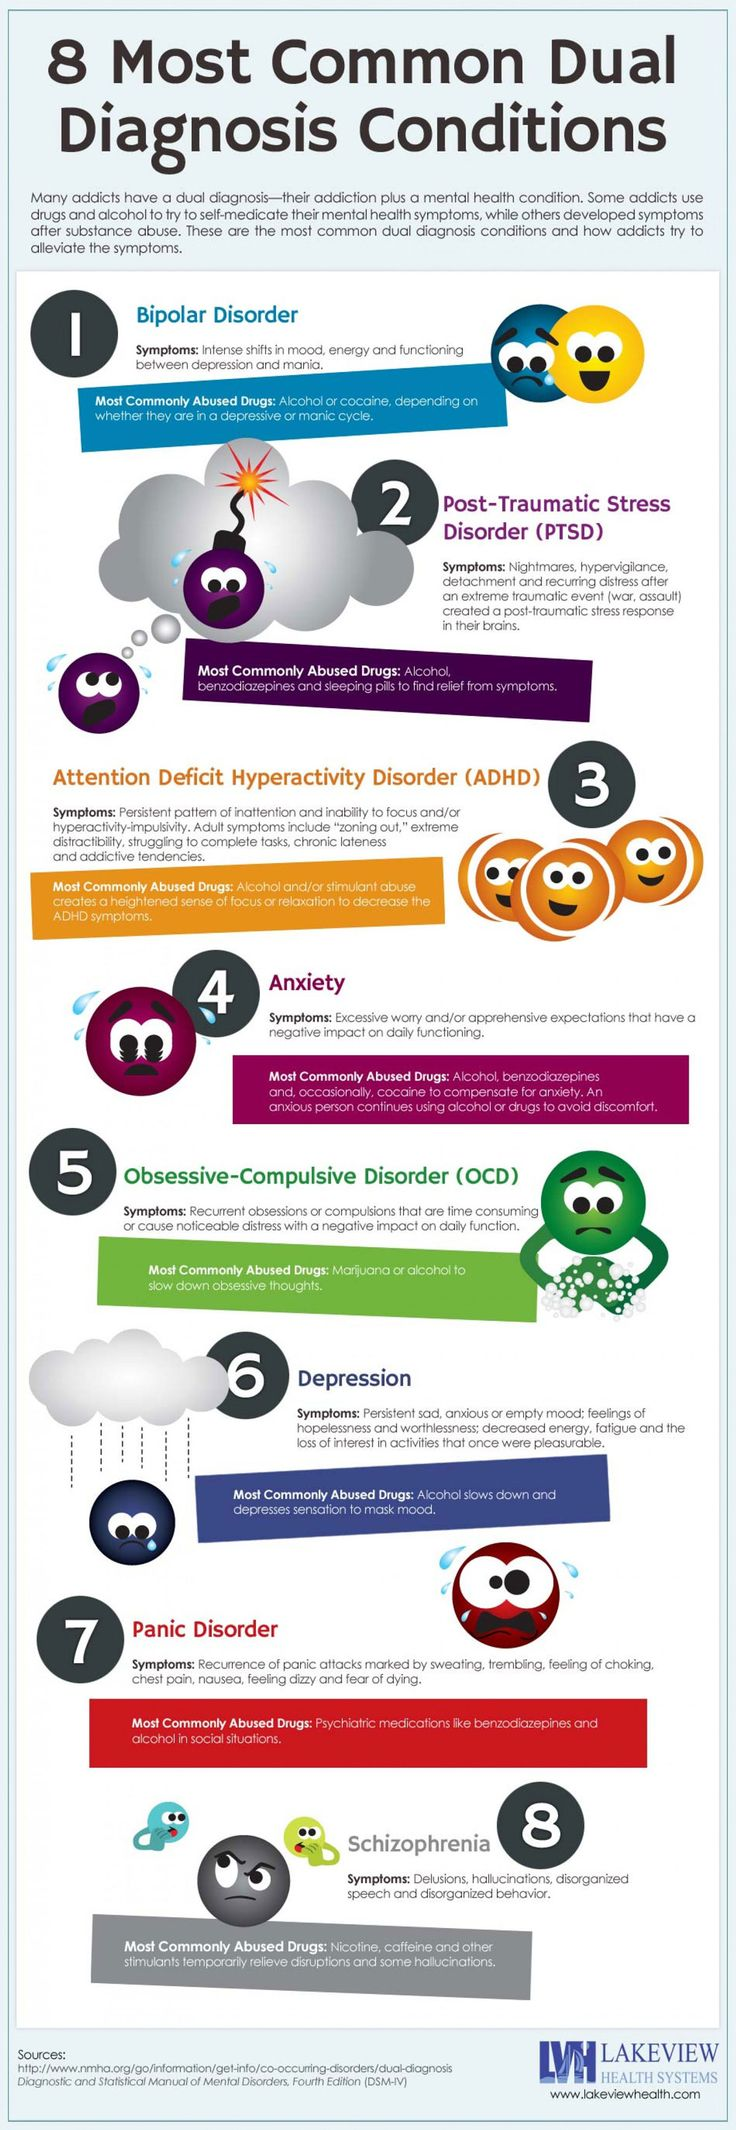 8 Most Common Dual Diagnosis Conditions Infographic